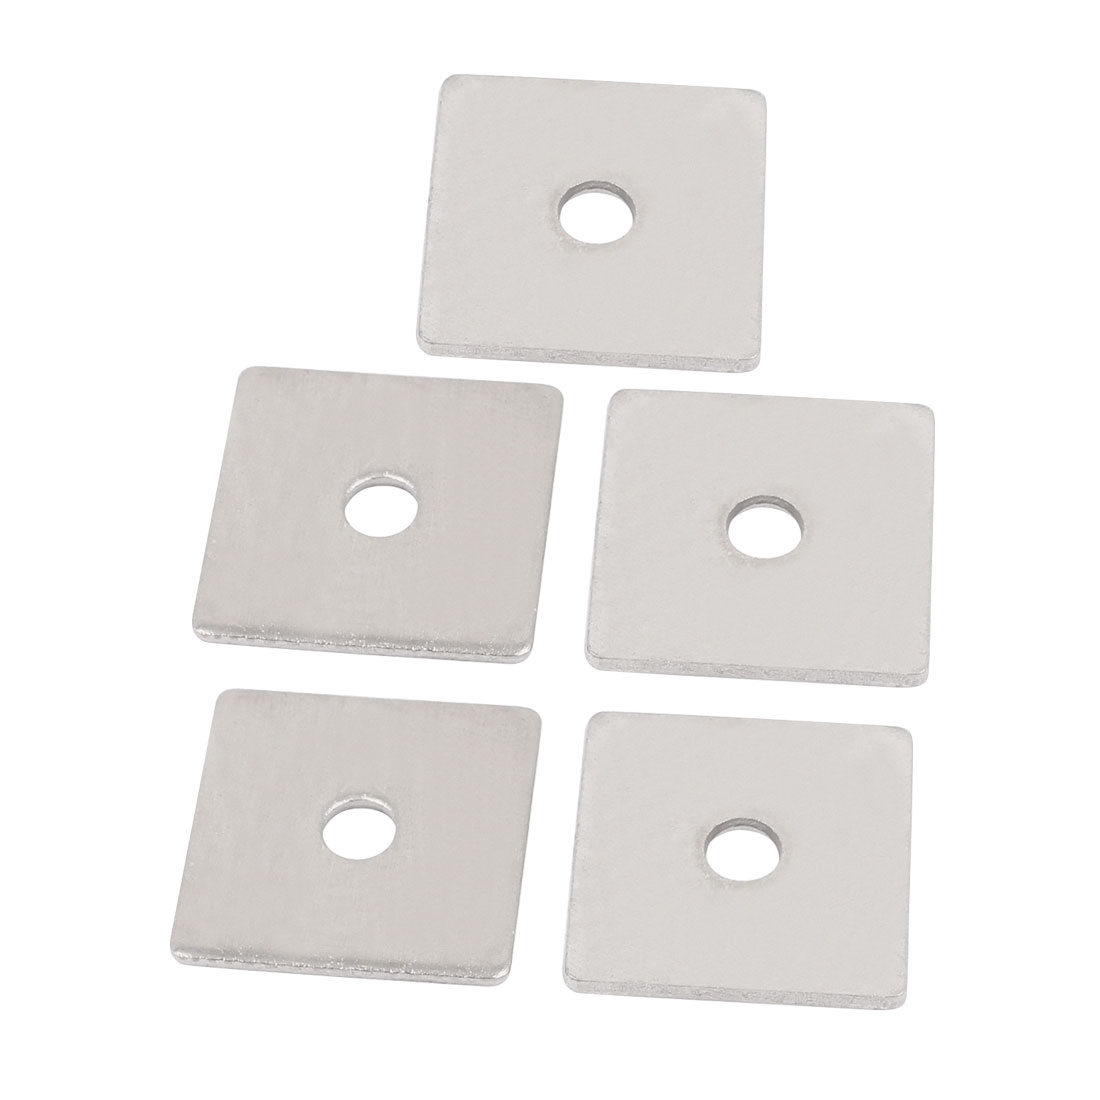 M6 x 30mm Square Stainless Steel Flat Repair Plate Silver Tone 5pcs